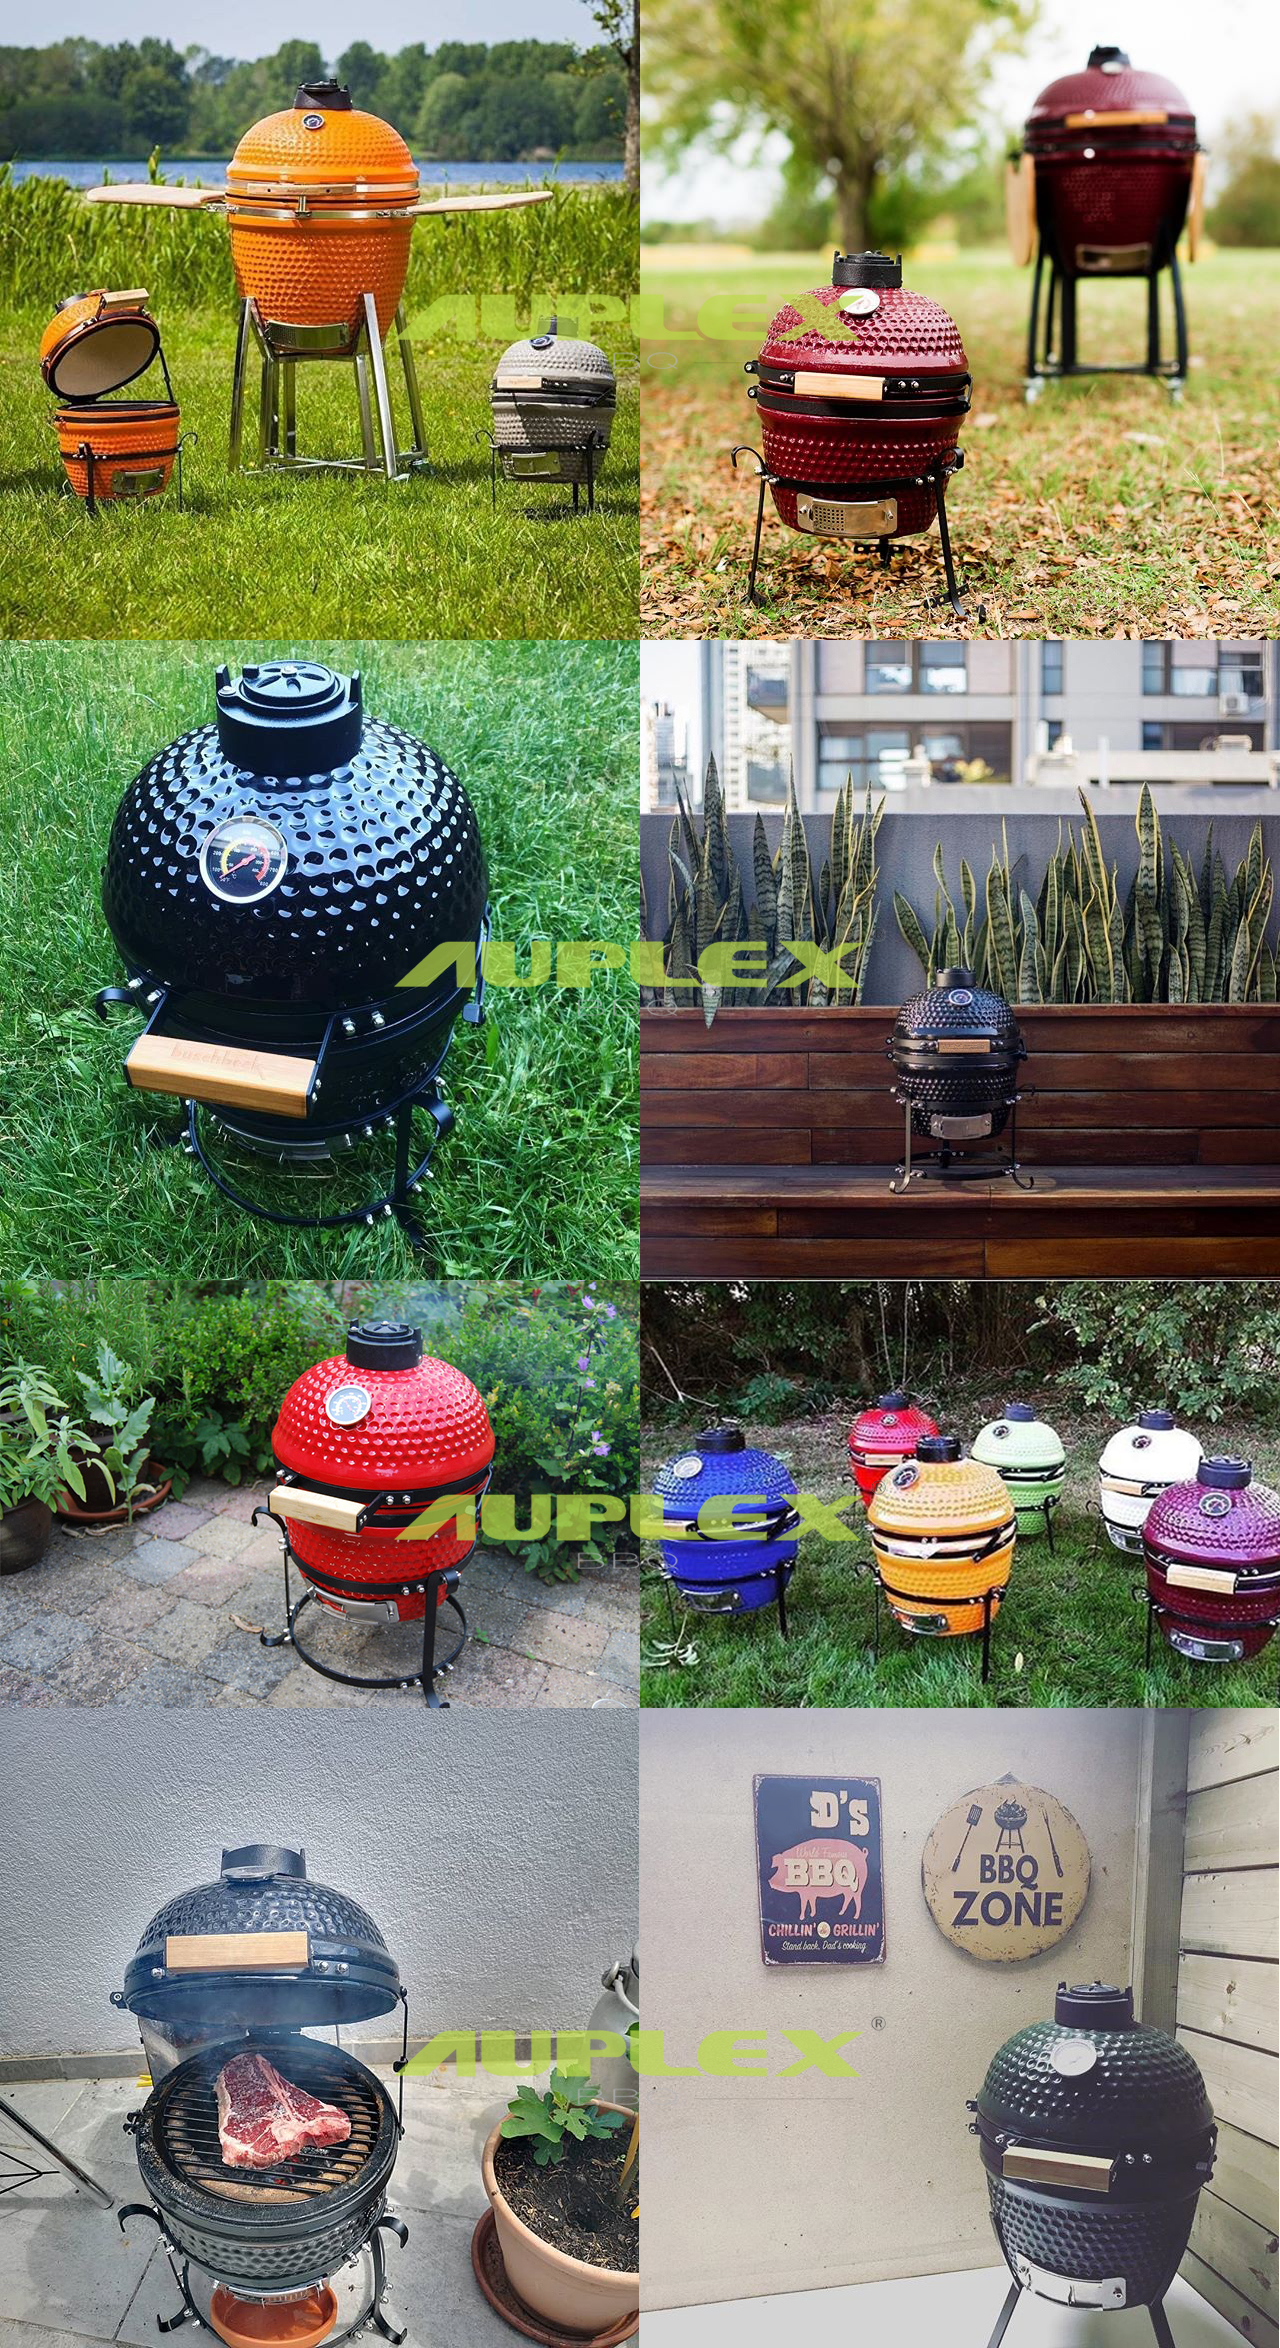 Outdoor Portable Charcoal 13 Inch Barbecue Ceramic Kamado BBQ Grill